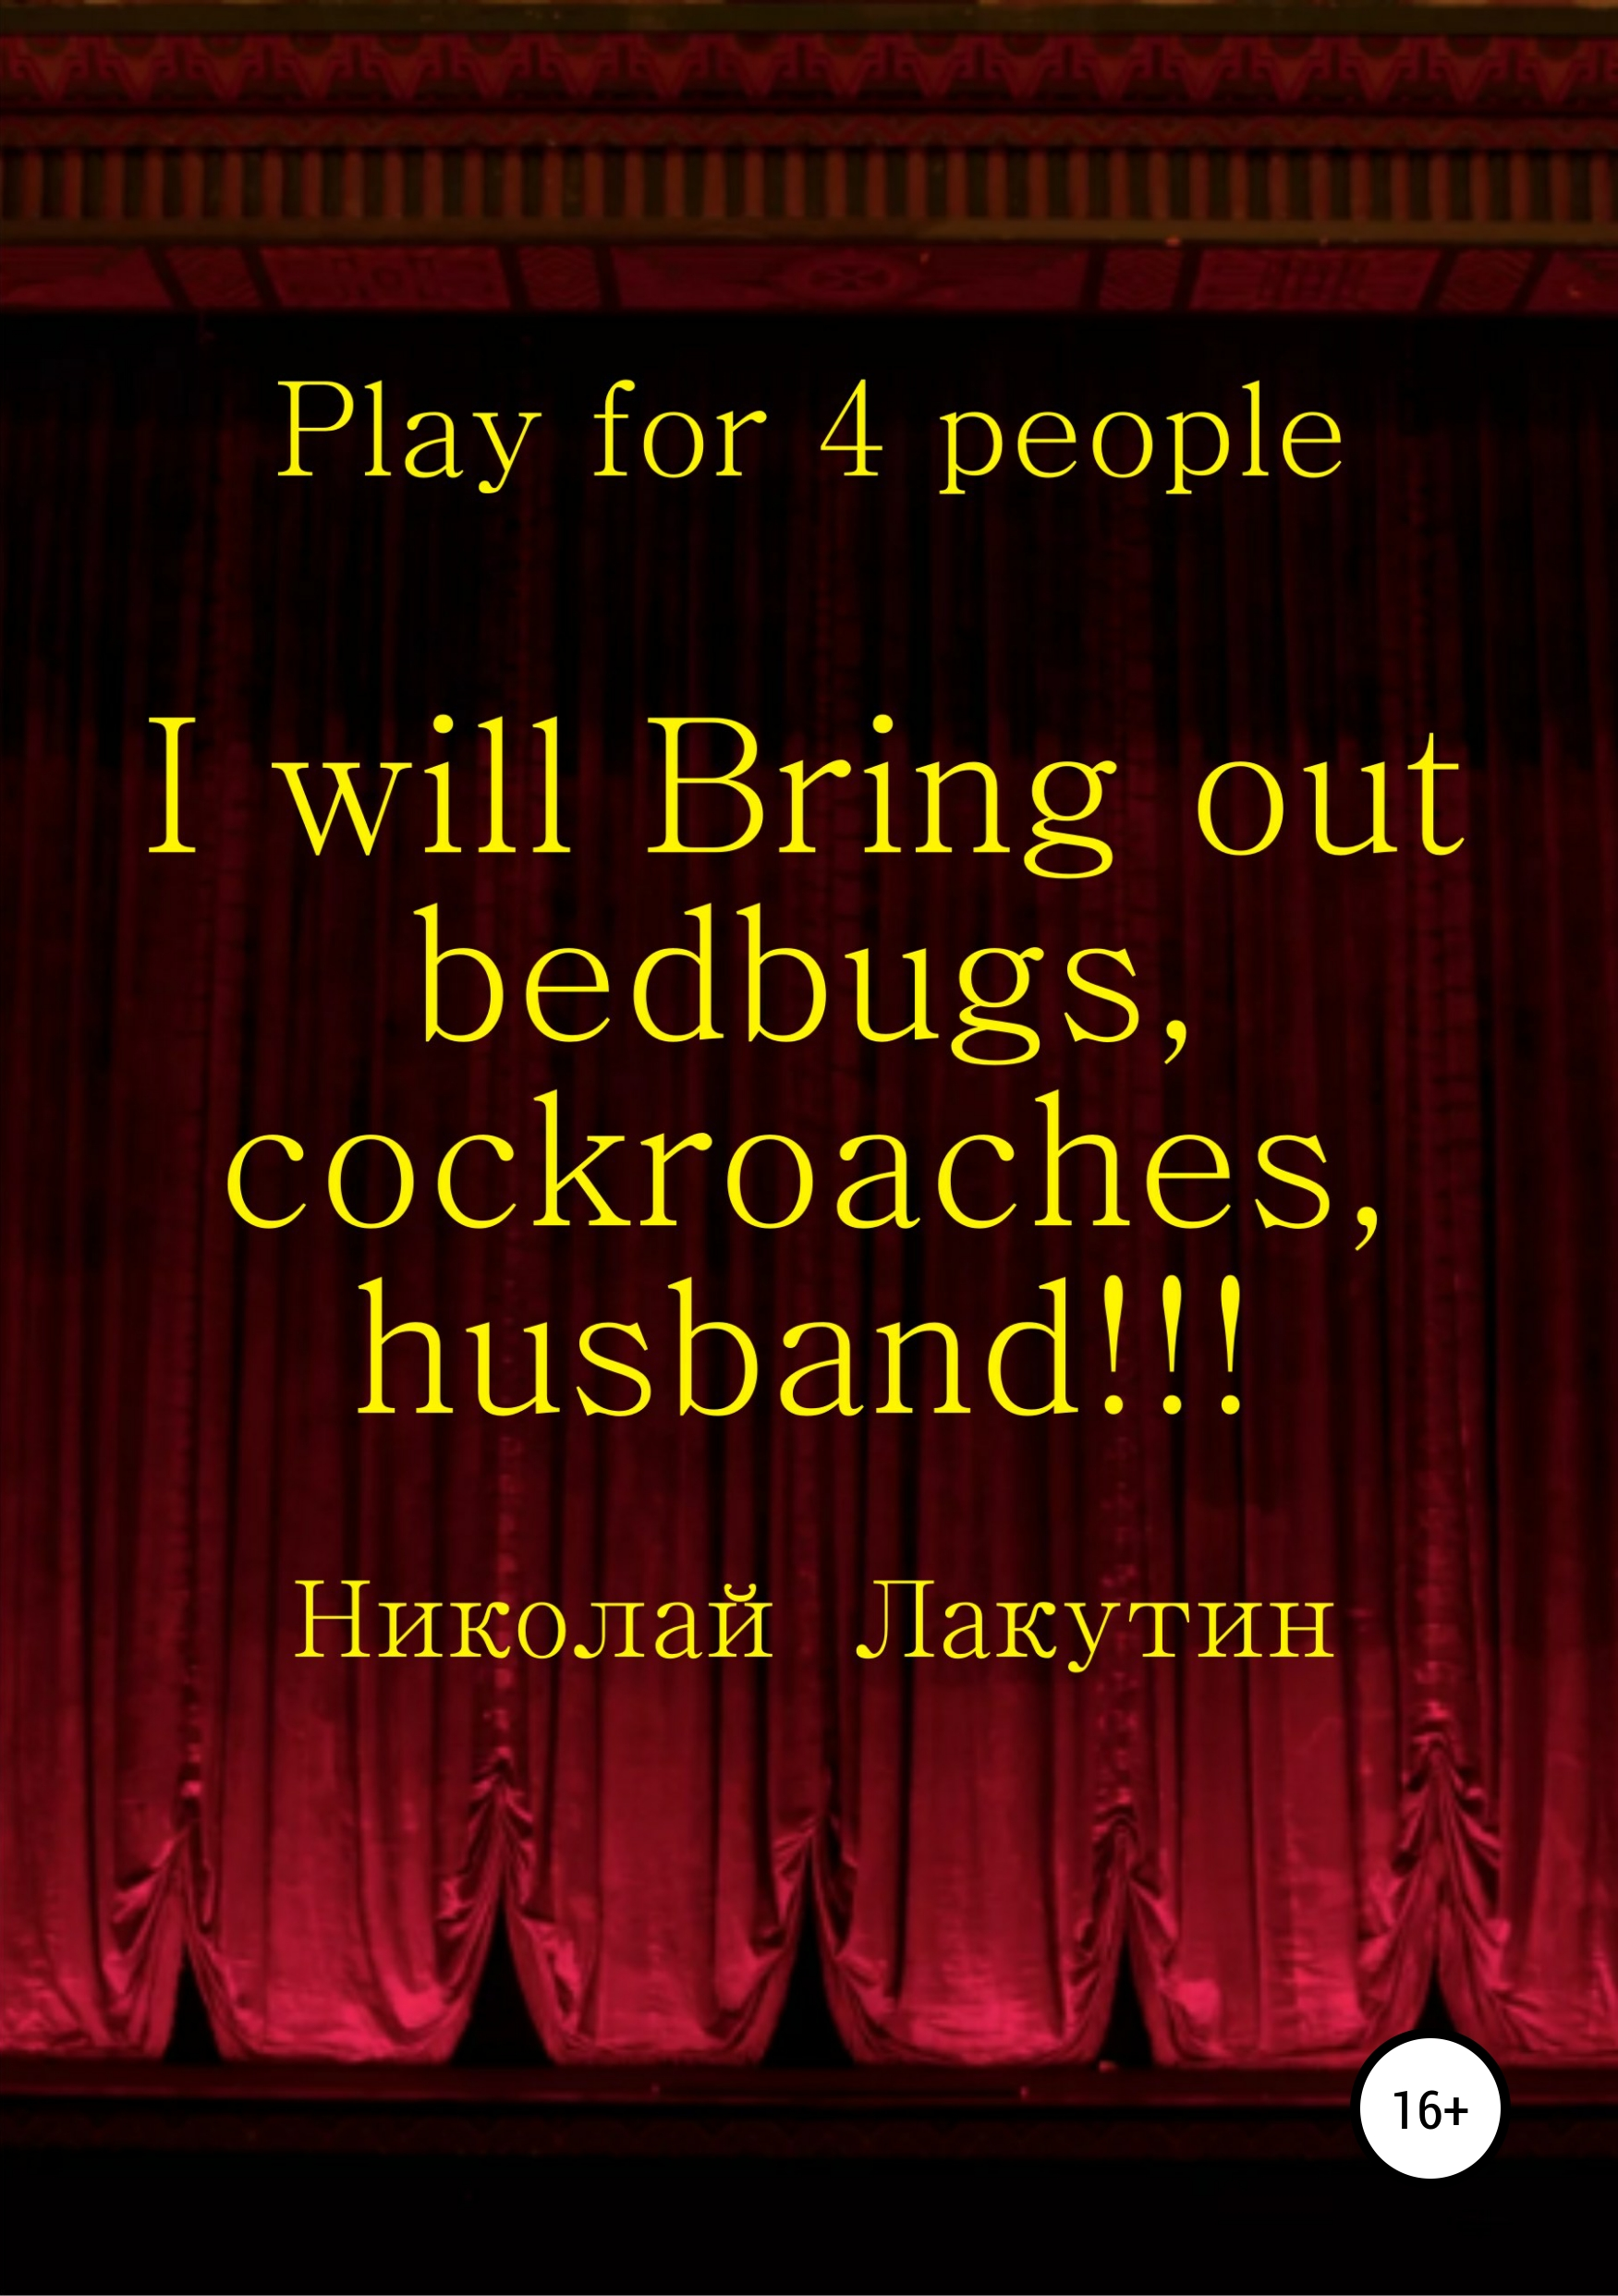 I will Bring out bedbugs, cockroaches, husband!!! Play for 4 people